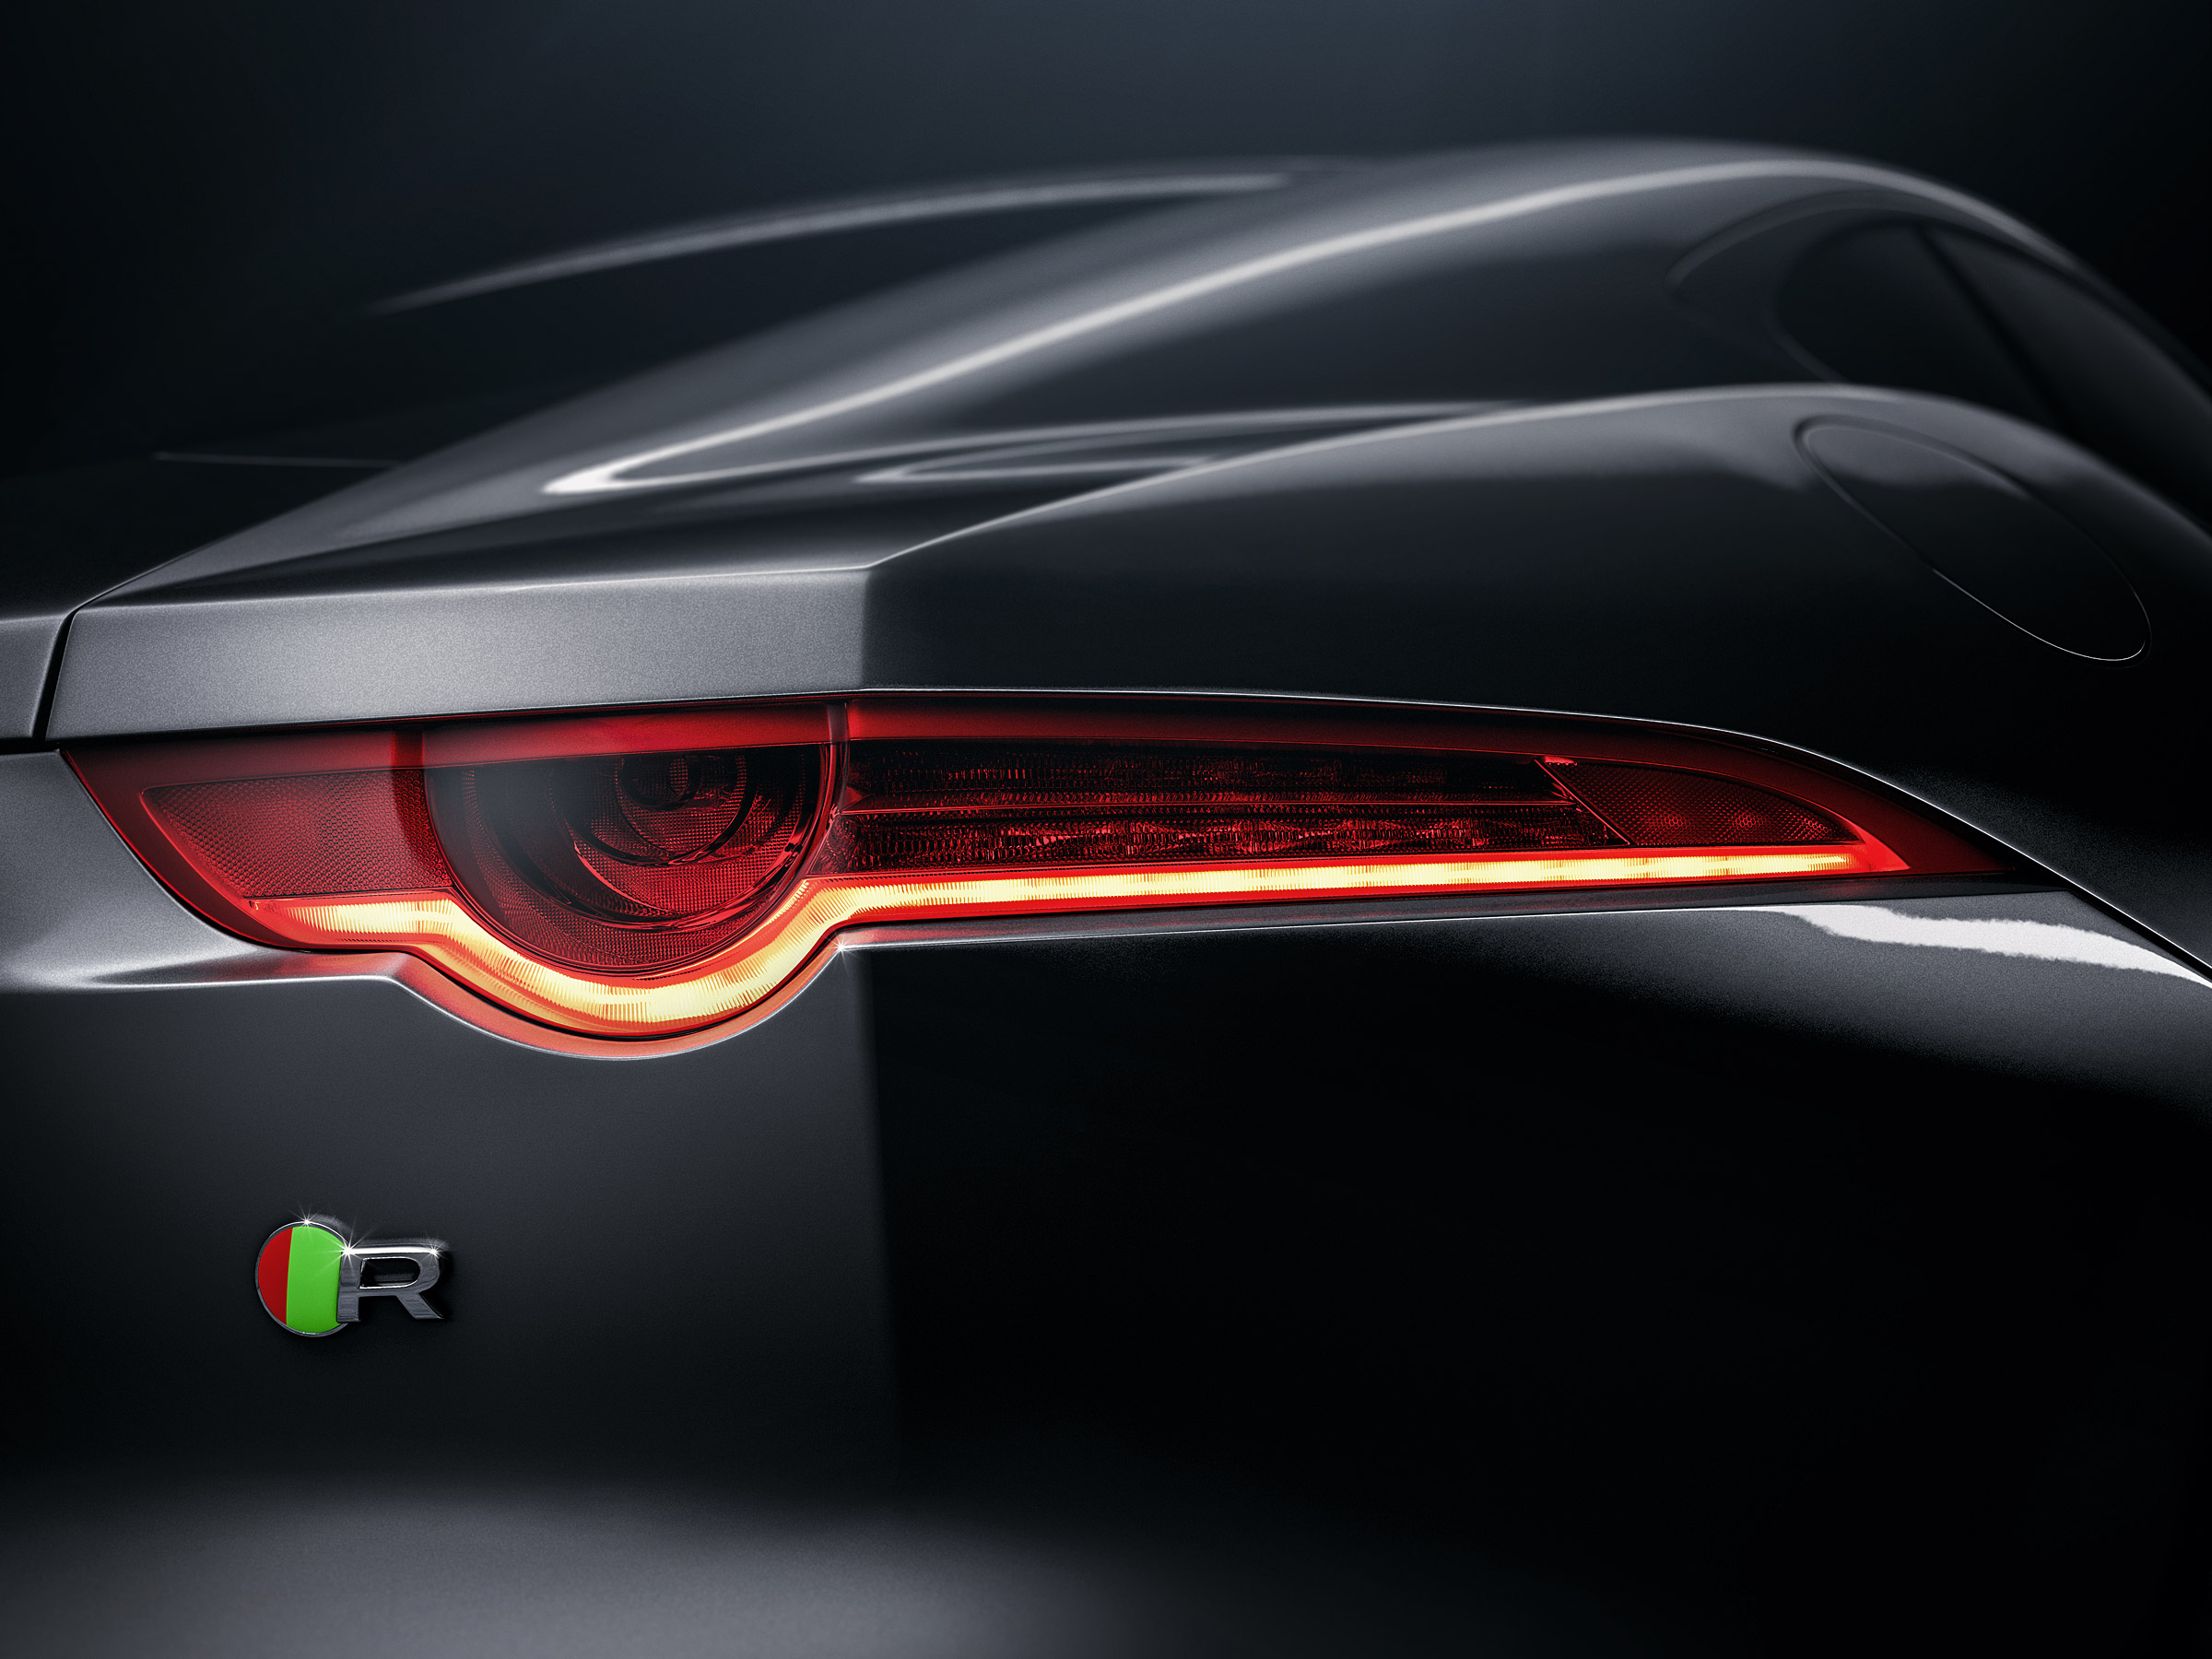 jaguar-ftype-f-type-tank-cgi-retouch-london-post-production-tail-brake-light-studio